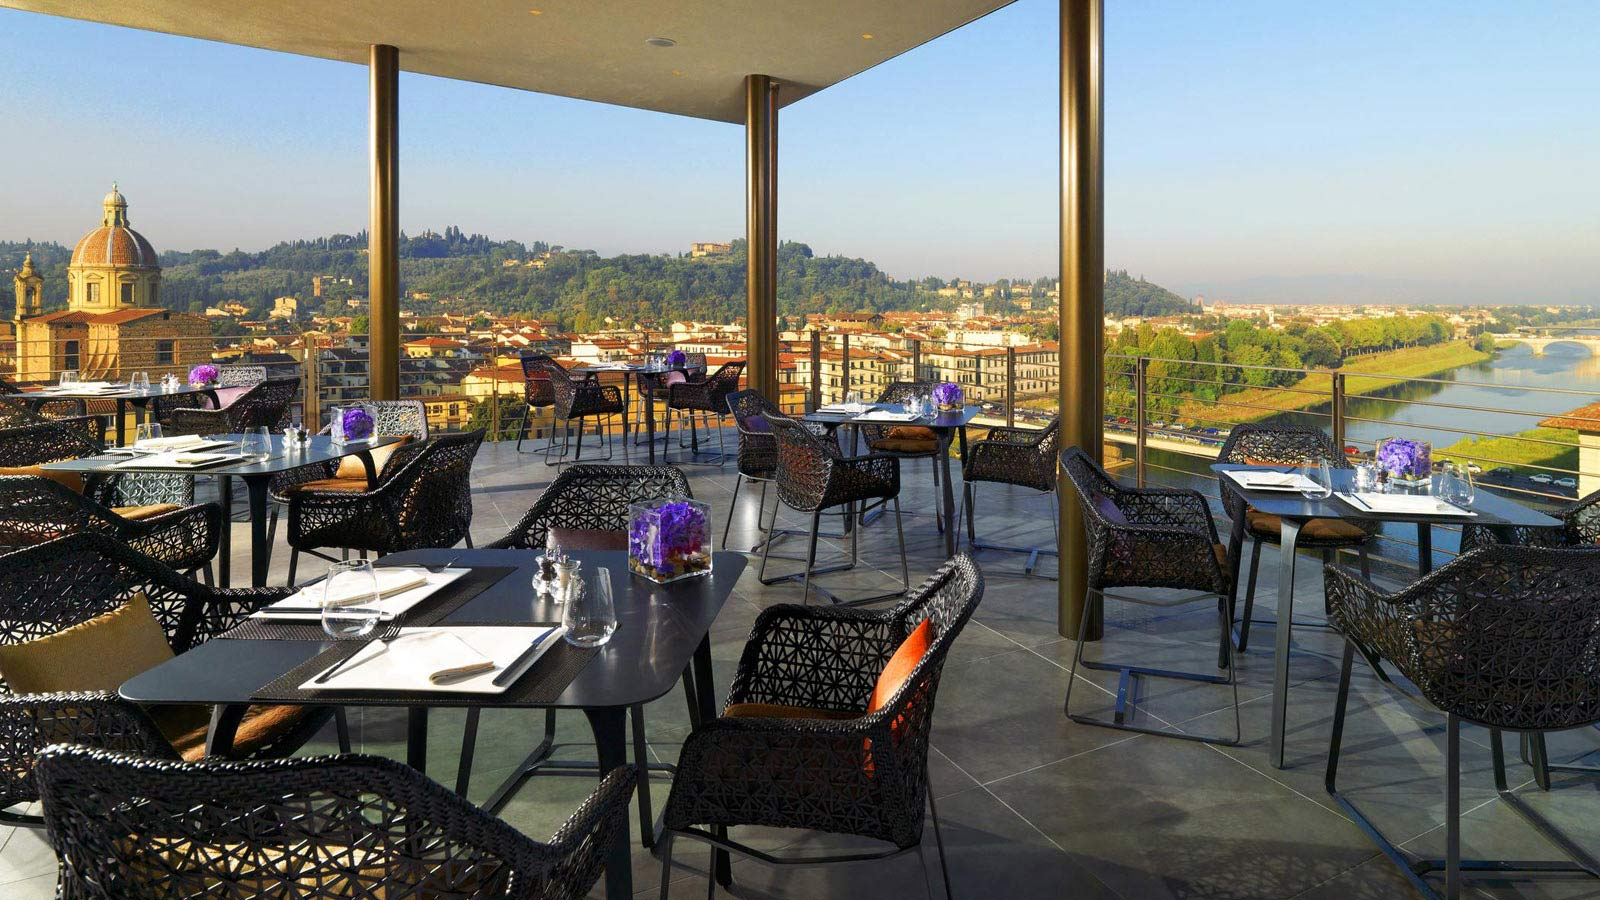 Romantic spots in Florence with a view | Wedding in Tuscany